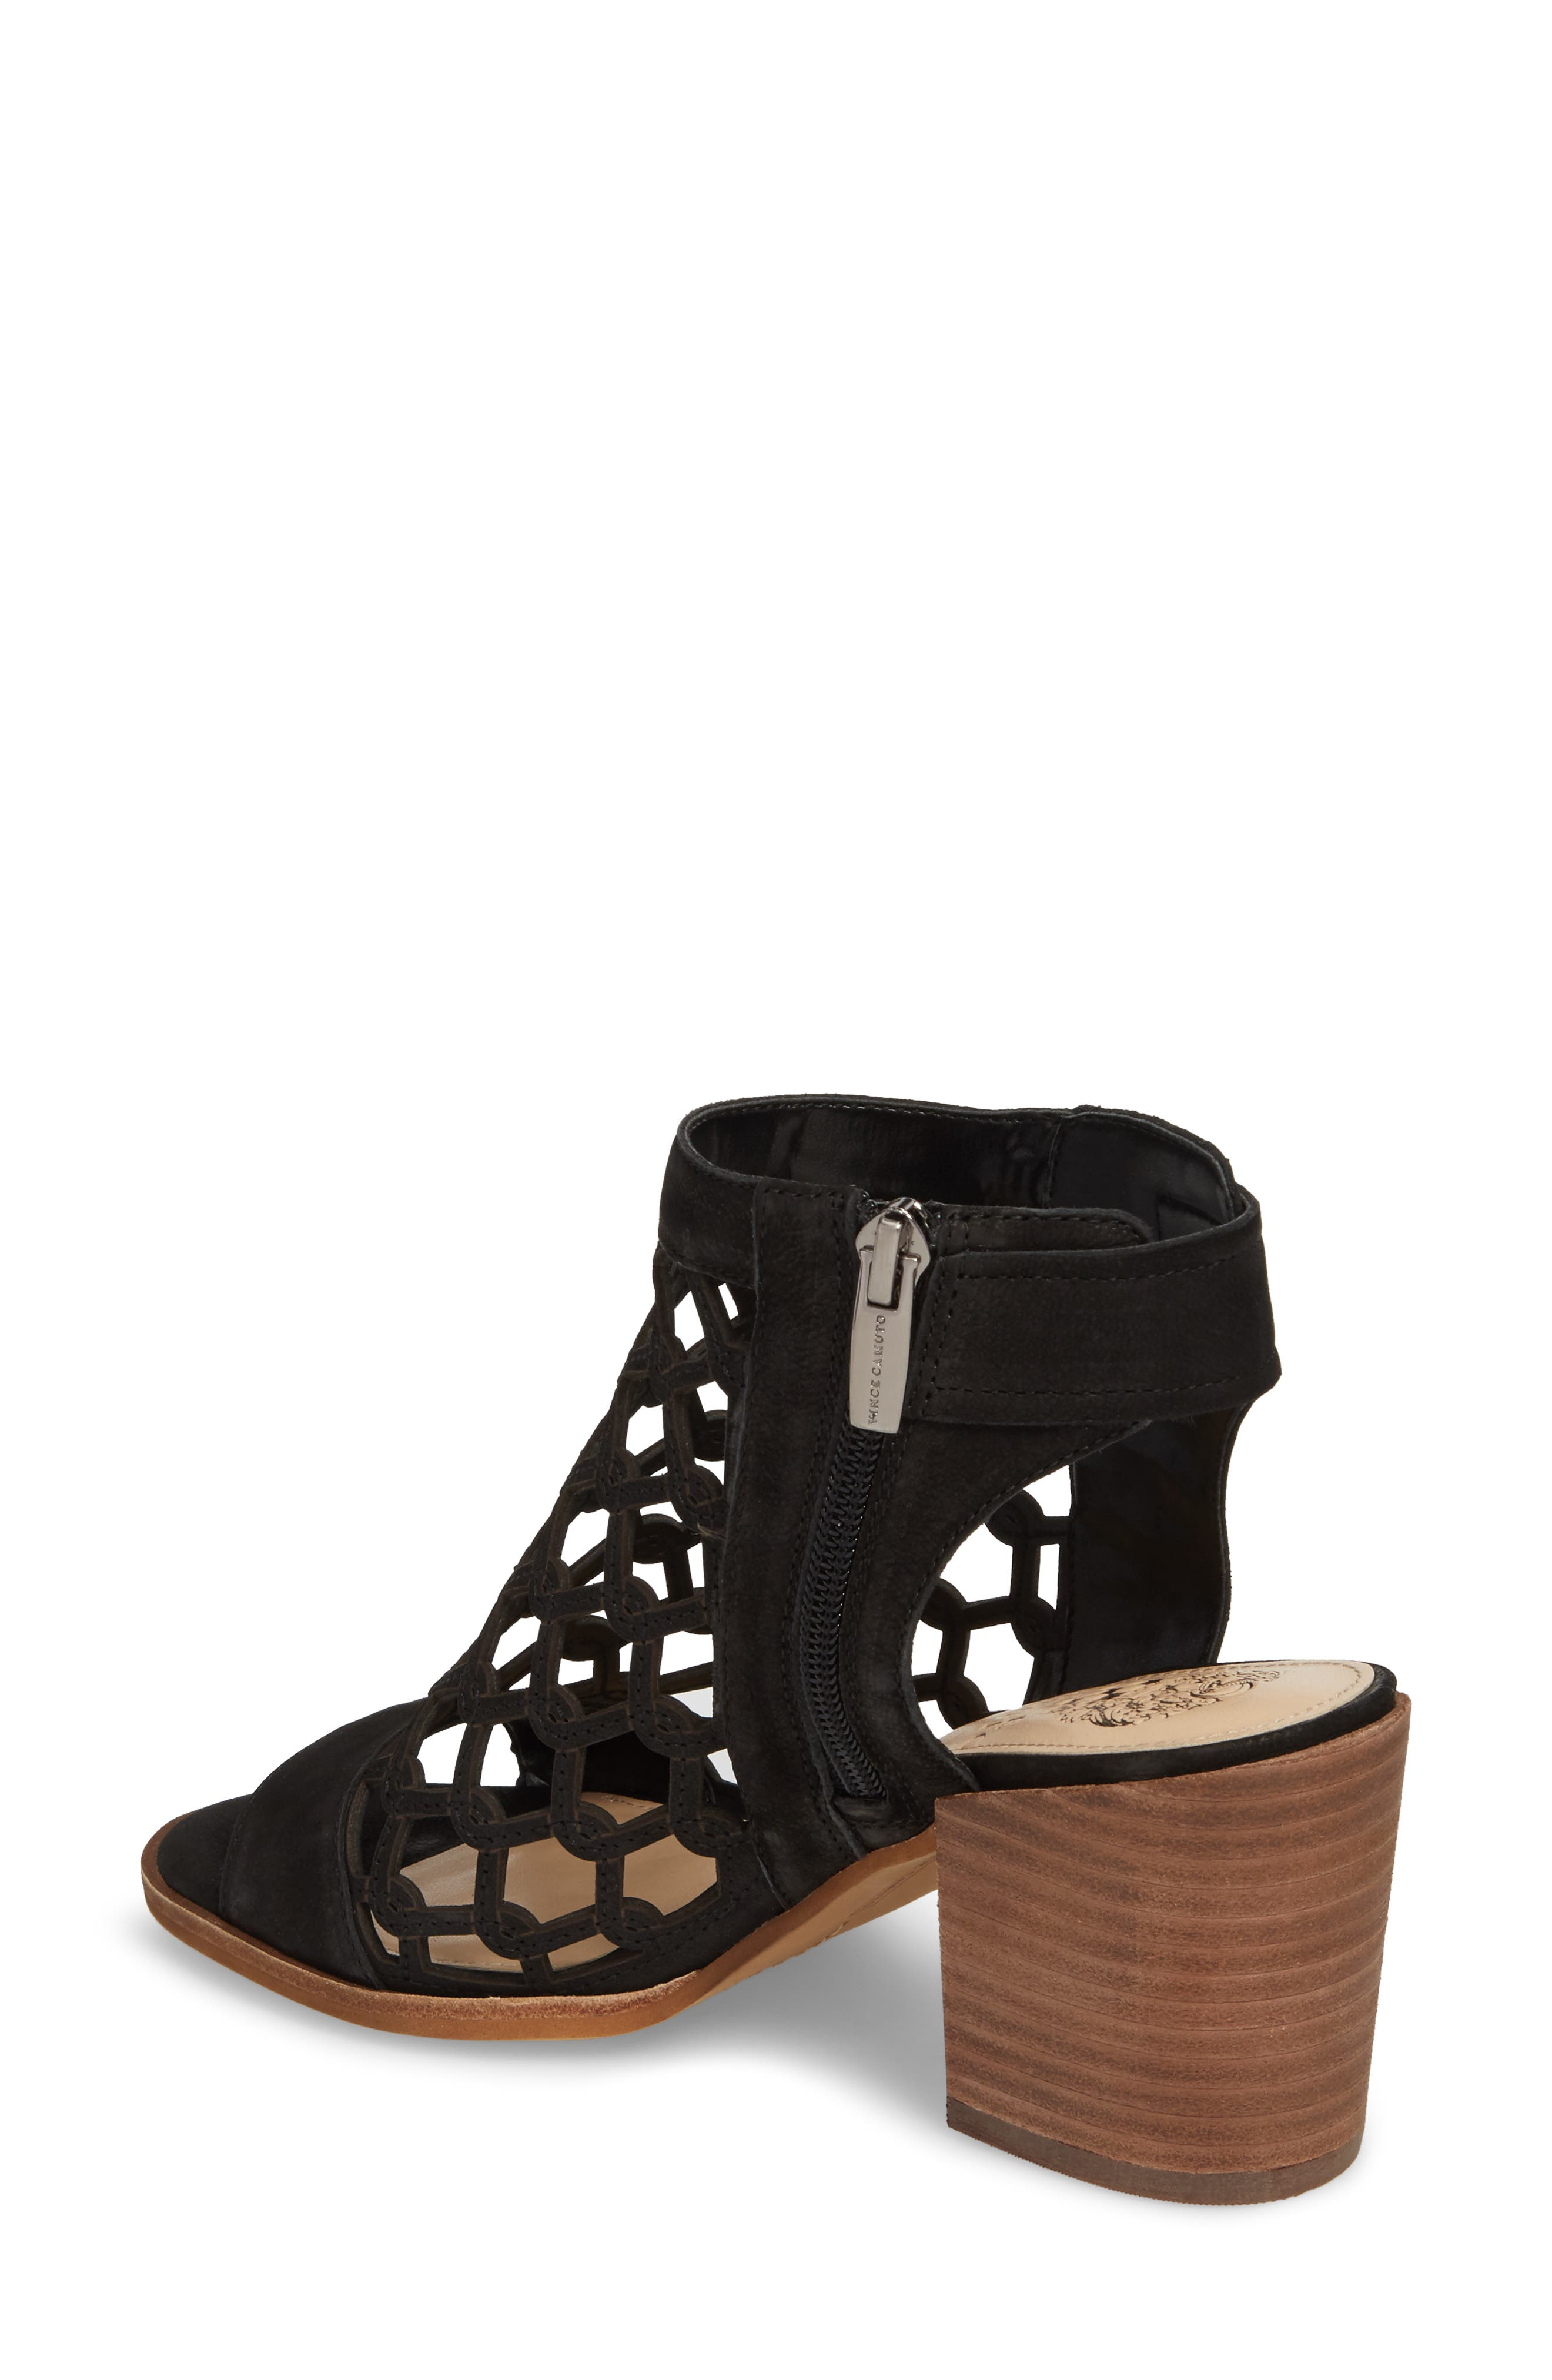 VINCE CAMUTO, Lanaira Sandal, Alternate thumbnail 2, color, BLACK LEATHER